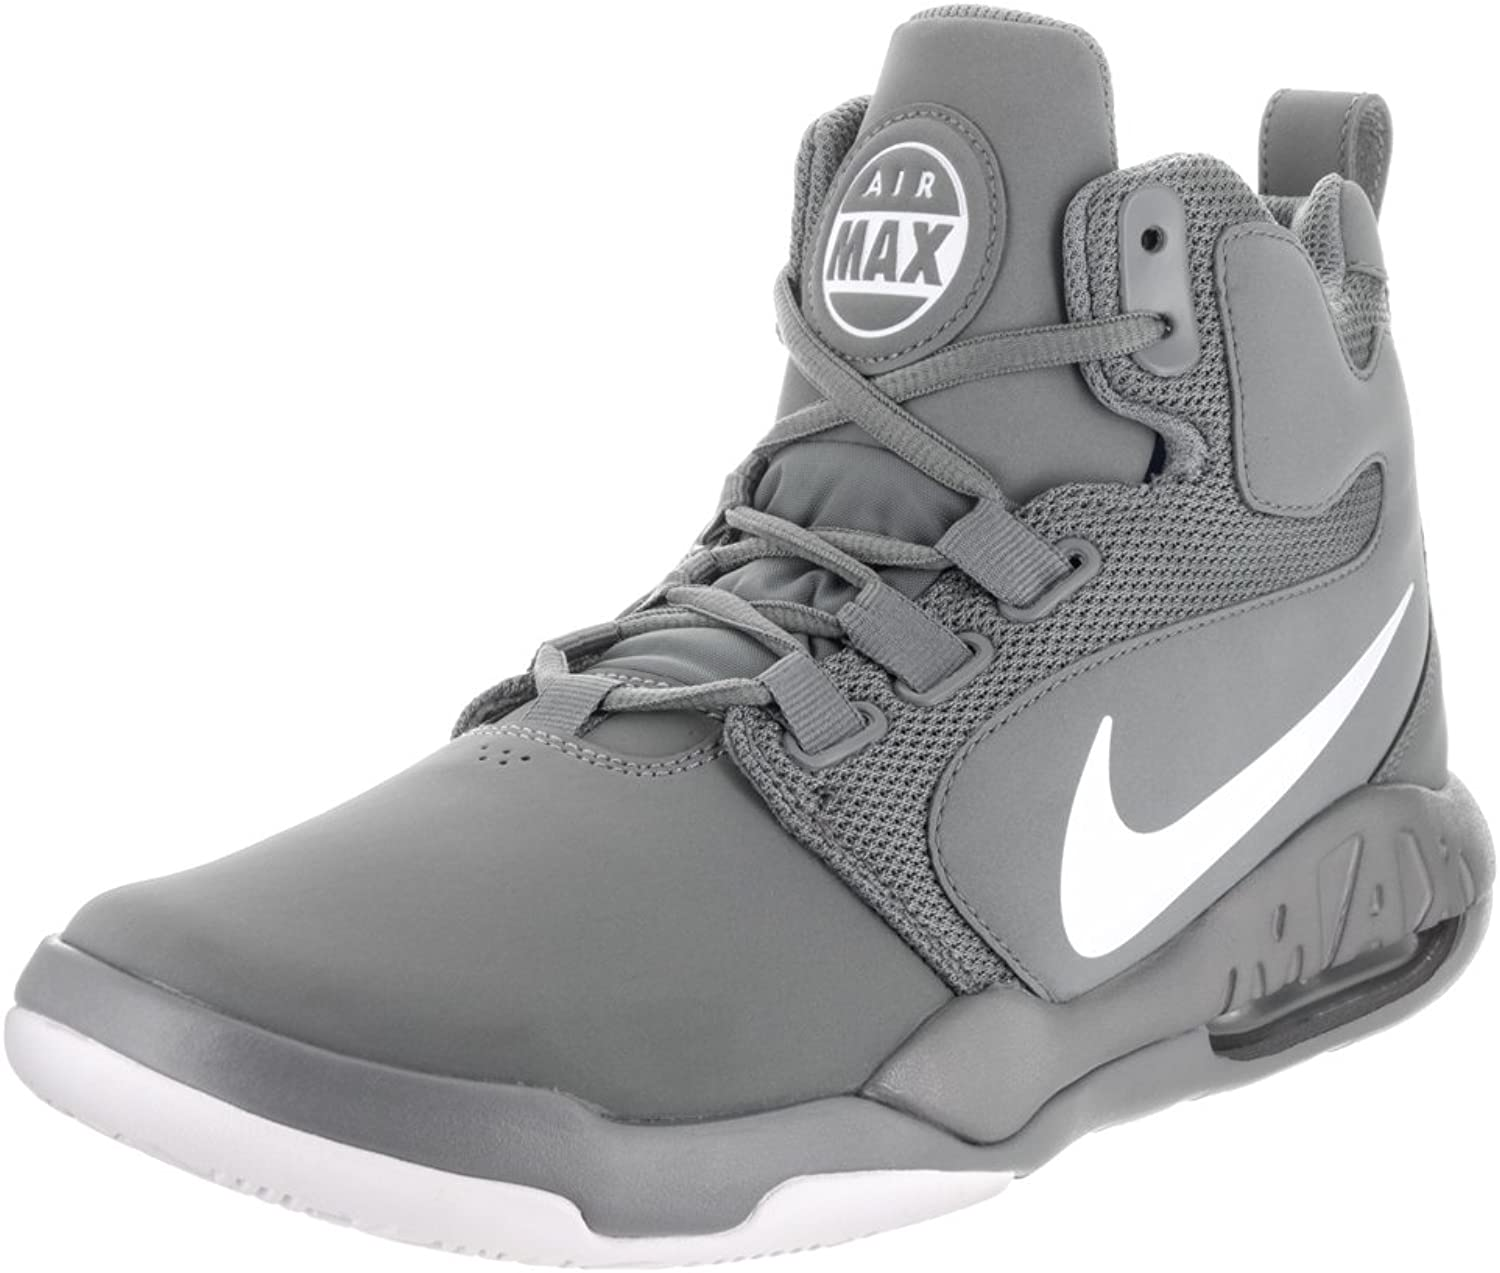 Nike Mens Air Conversion Cool Grey White Basketball shoes 10.5 Men US